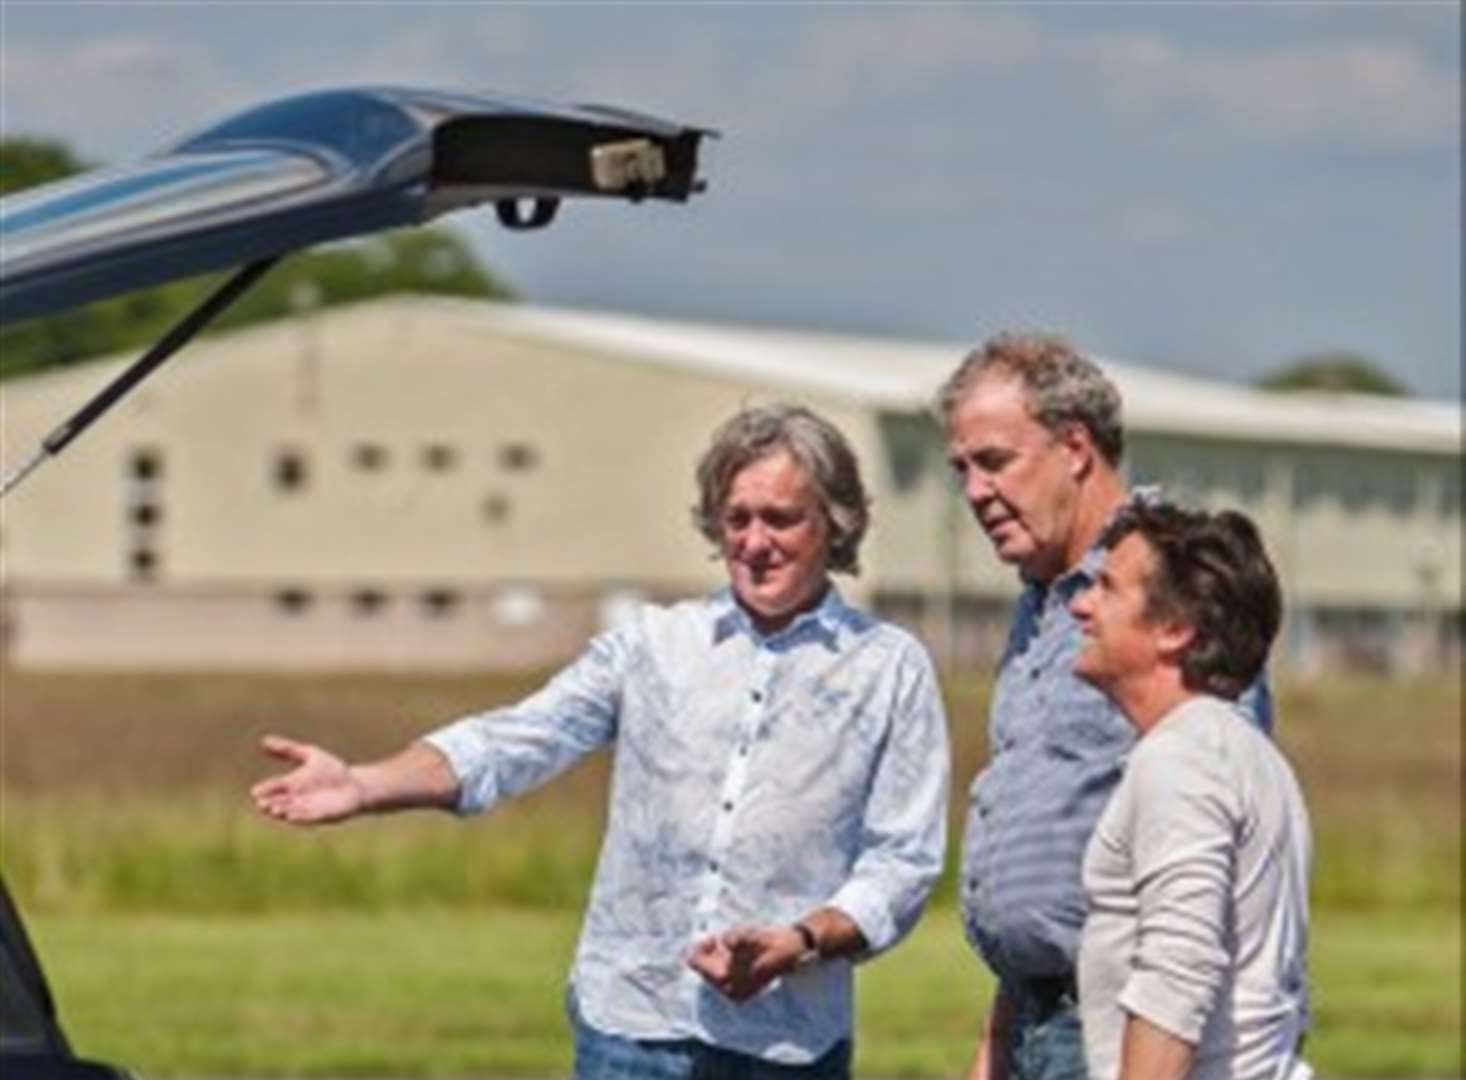 Top Gear Lydd edition on TV this weekend